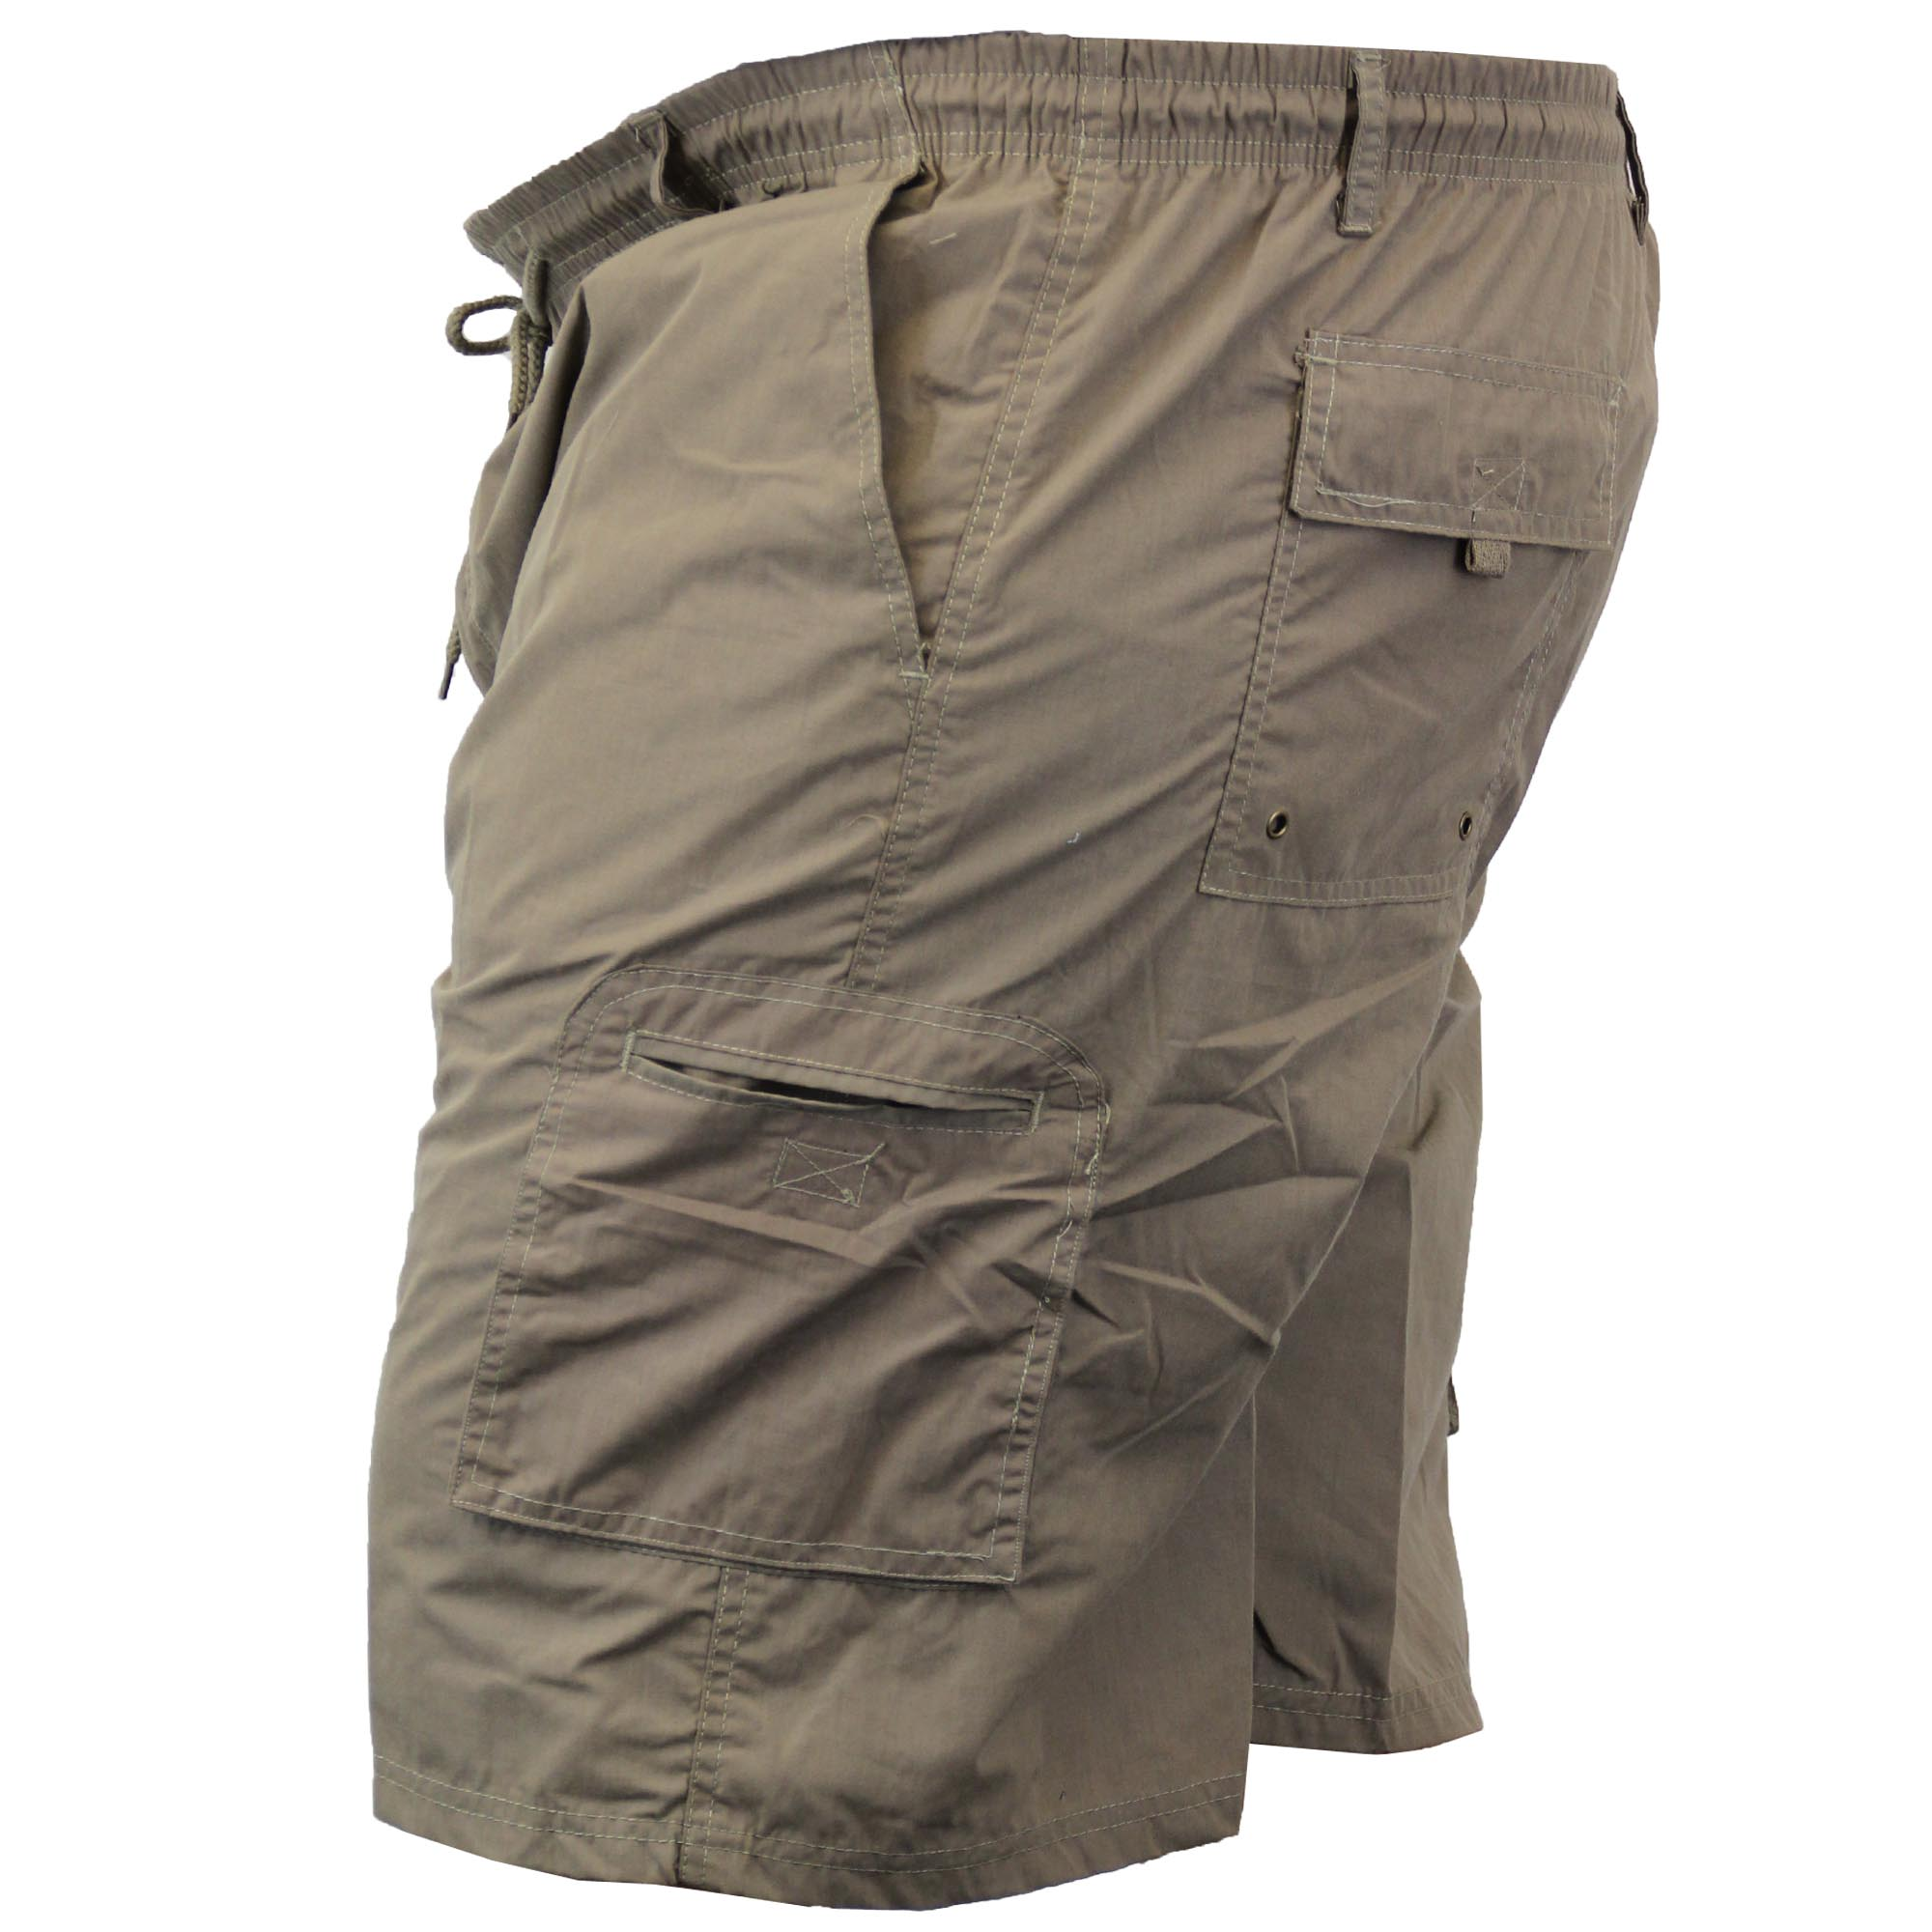 King Size Clothing Mens Cargo Combat Knee Length Big King Size Shorts By D555